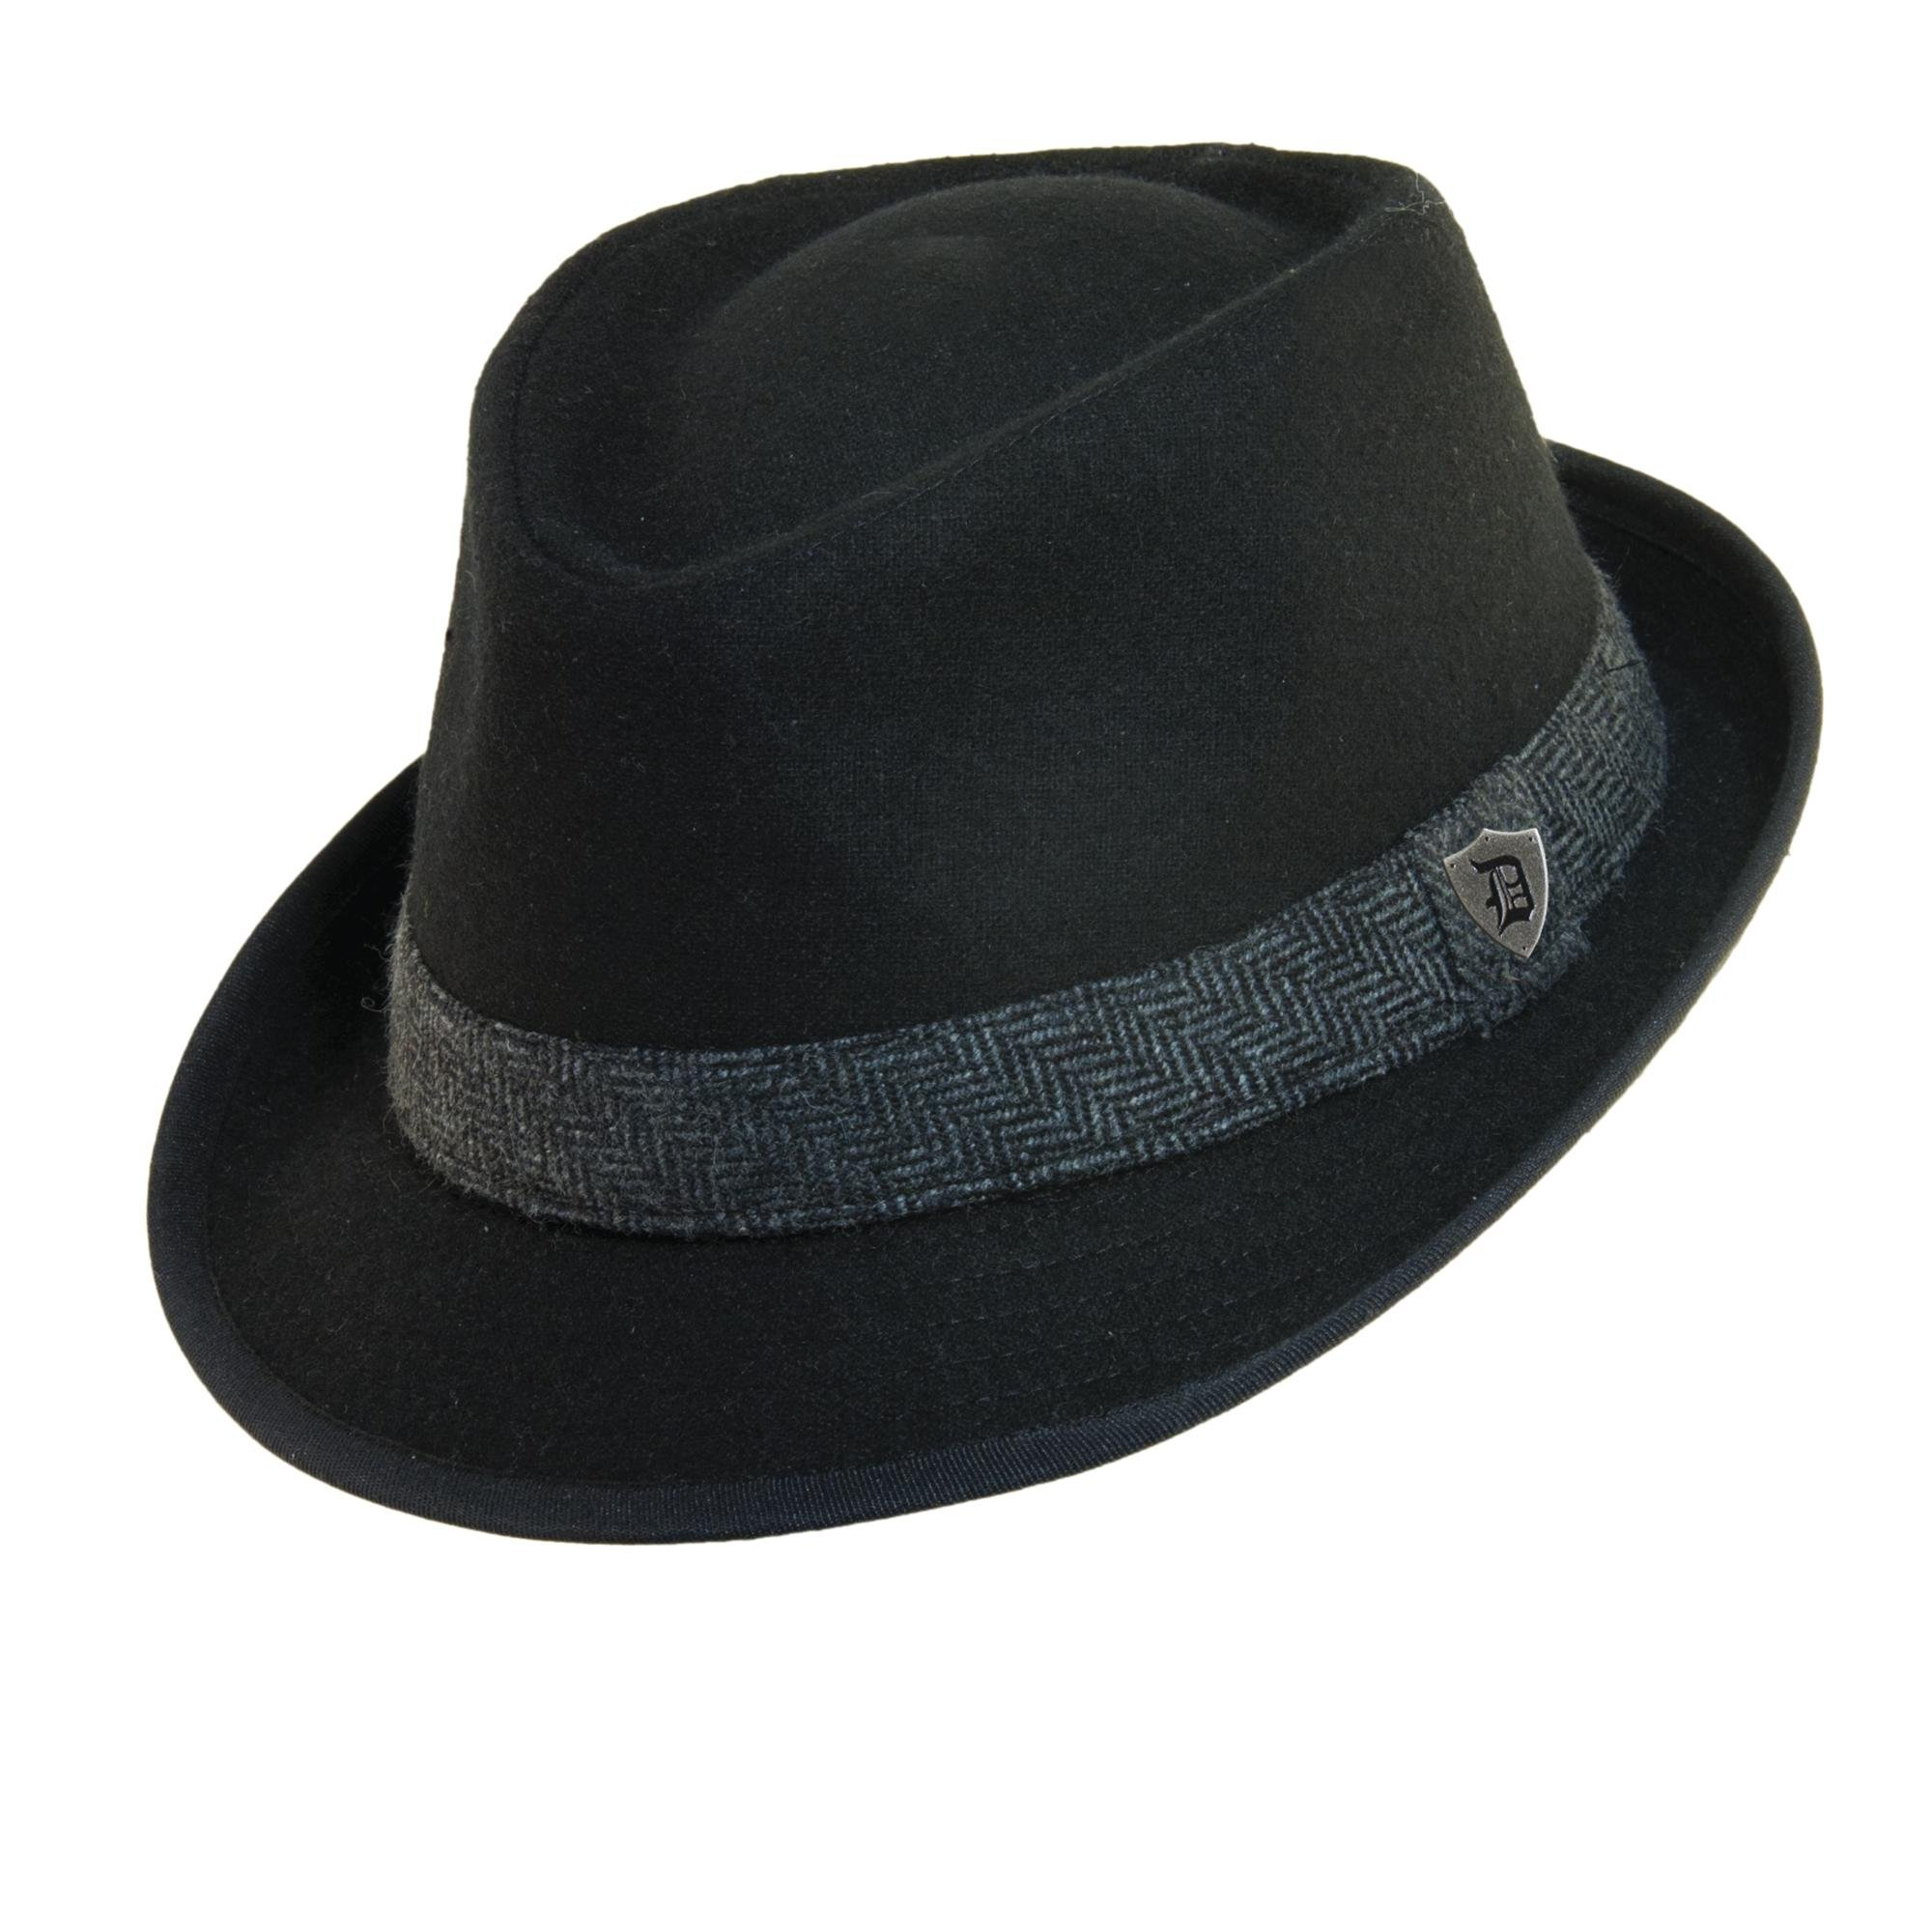 Dorfman Pacific Mens Wool Blend Fedora Hat with Herringbone Band,X-Large / 23 1/2-24 Inches,Black